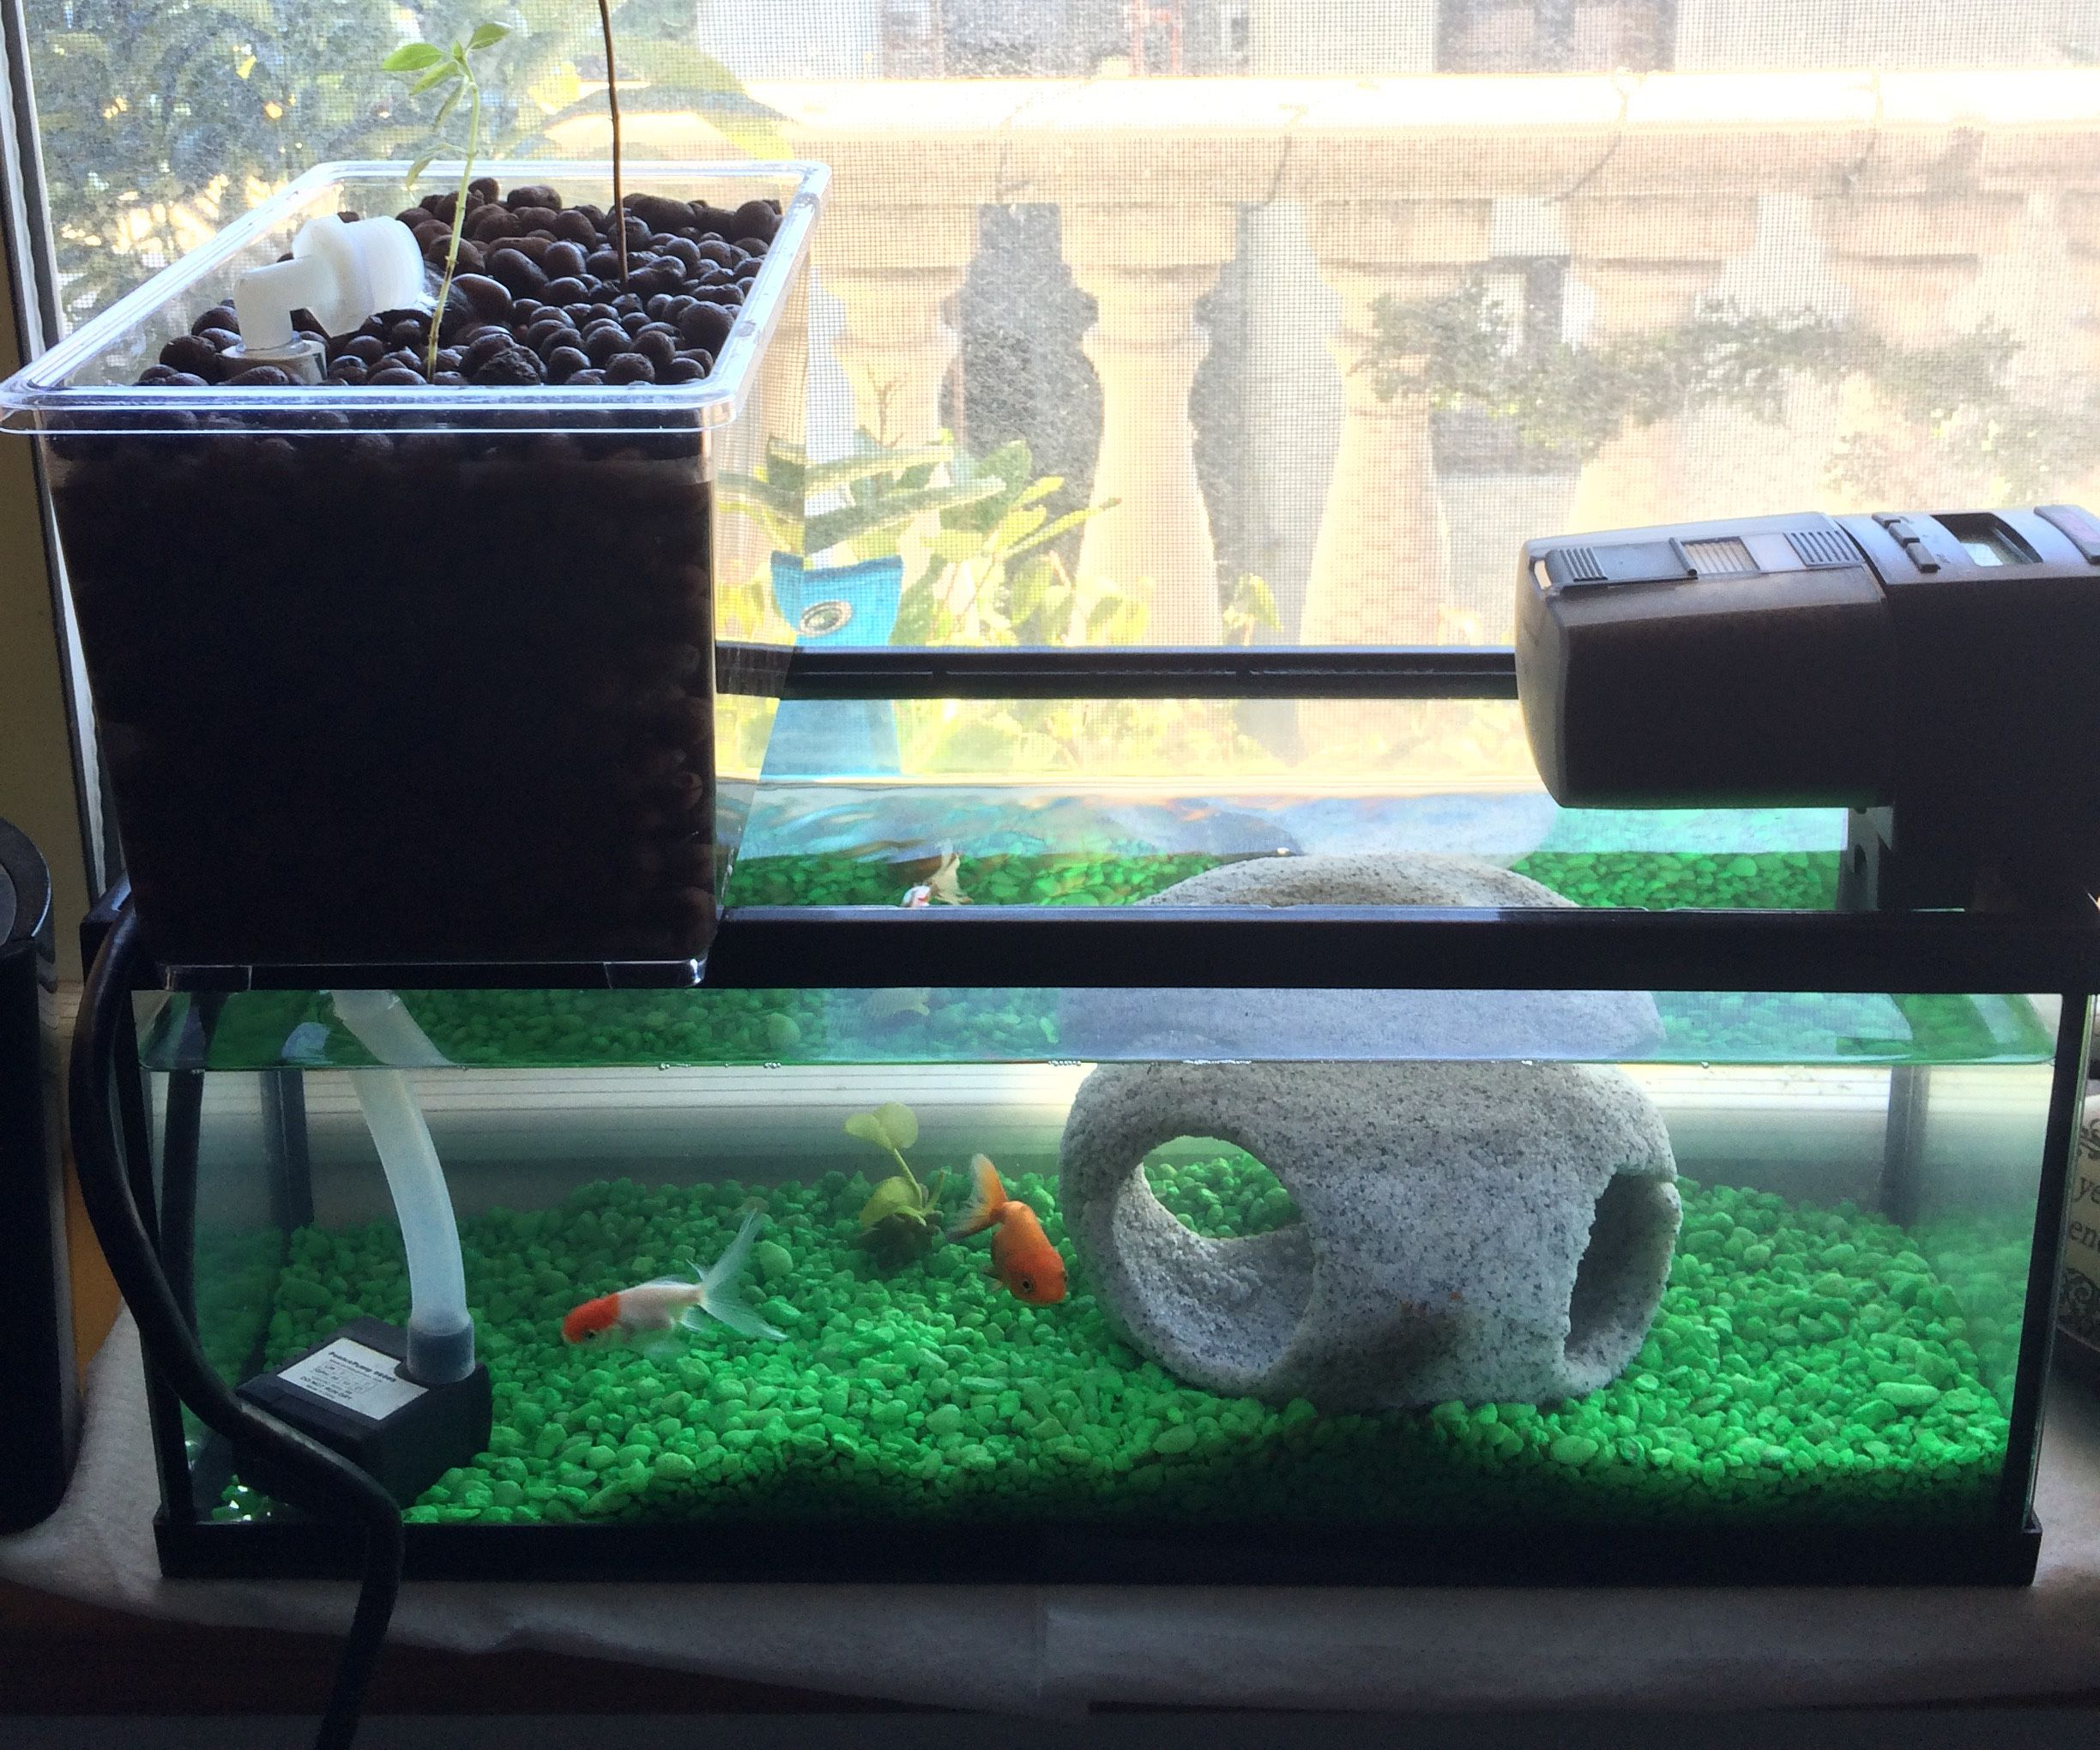 Windowsill Aquaponics System